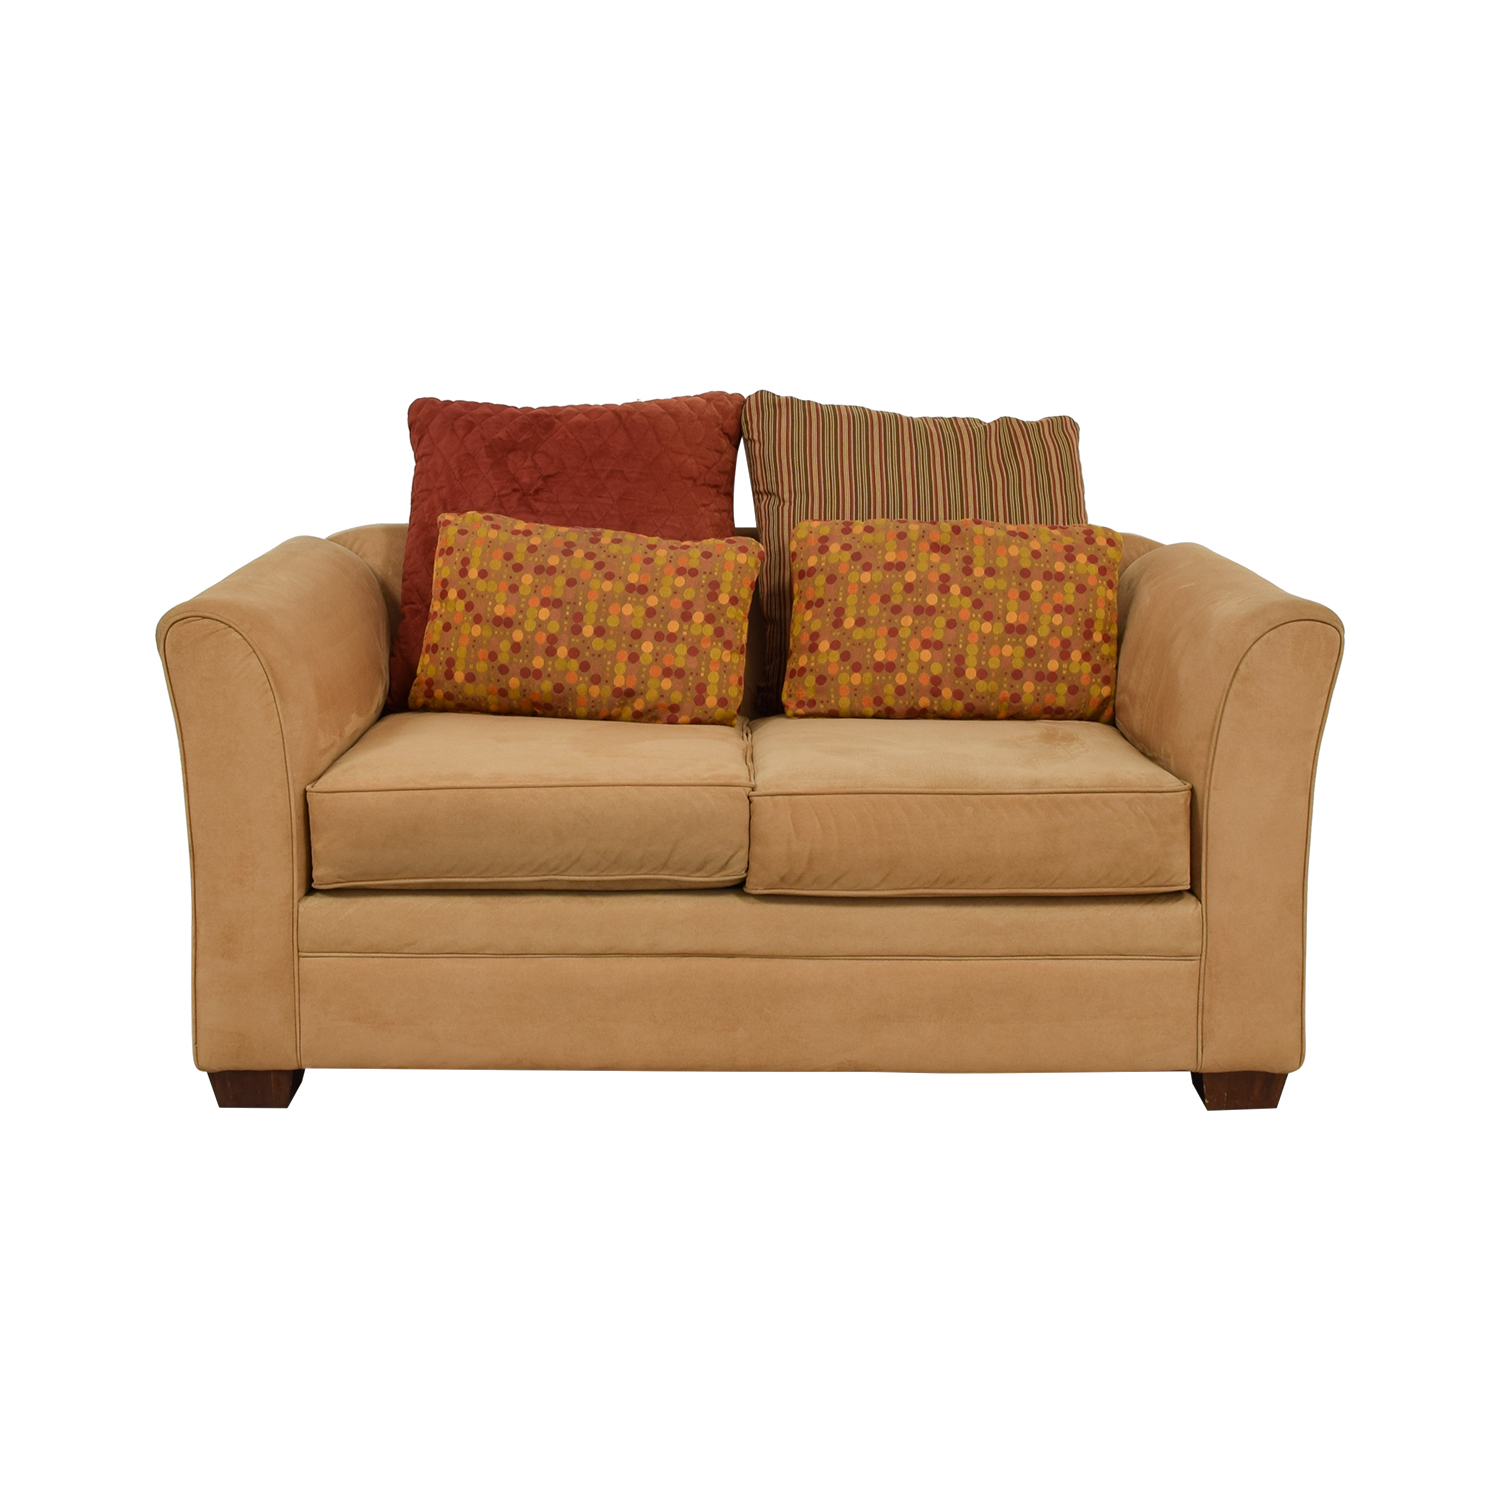 Raymour & Flanagan Raymour & Flanagan Camel Two-Cushion Loveseat used